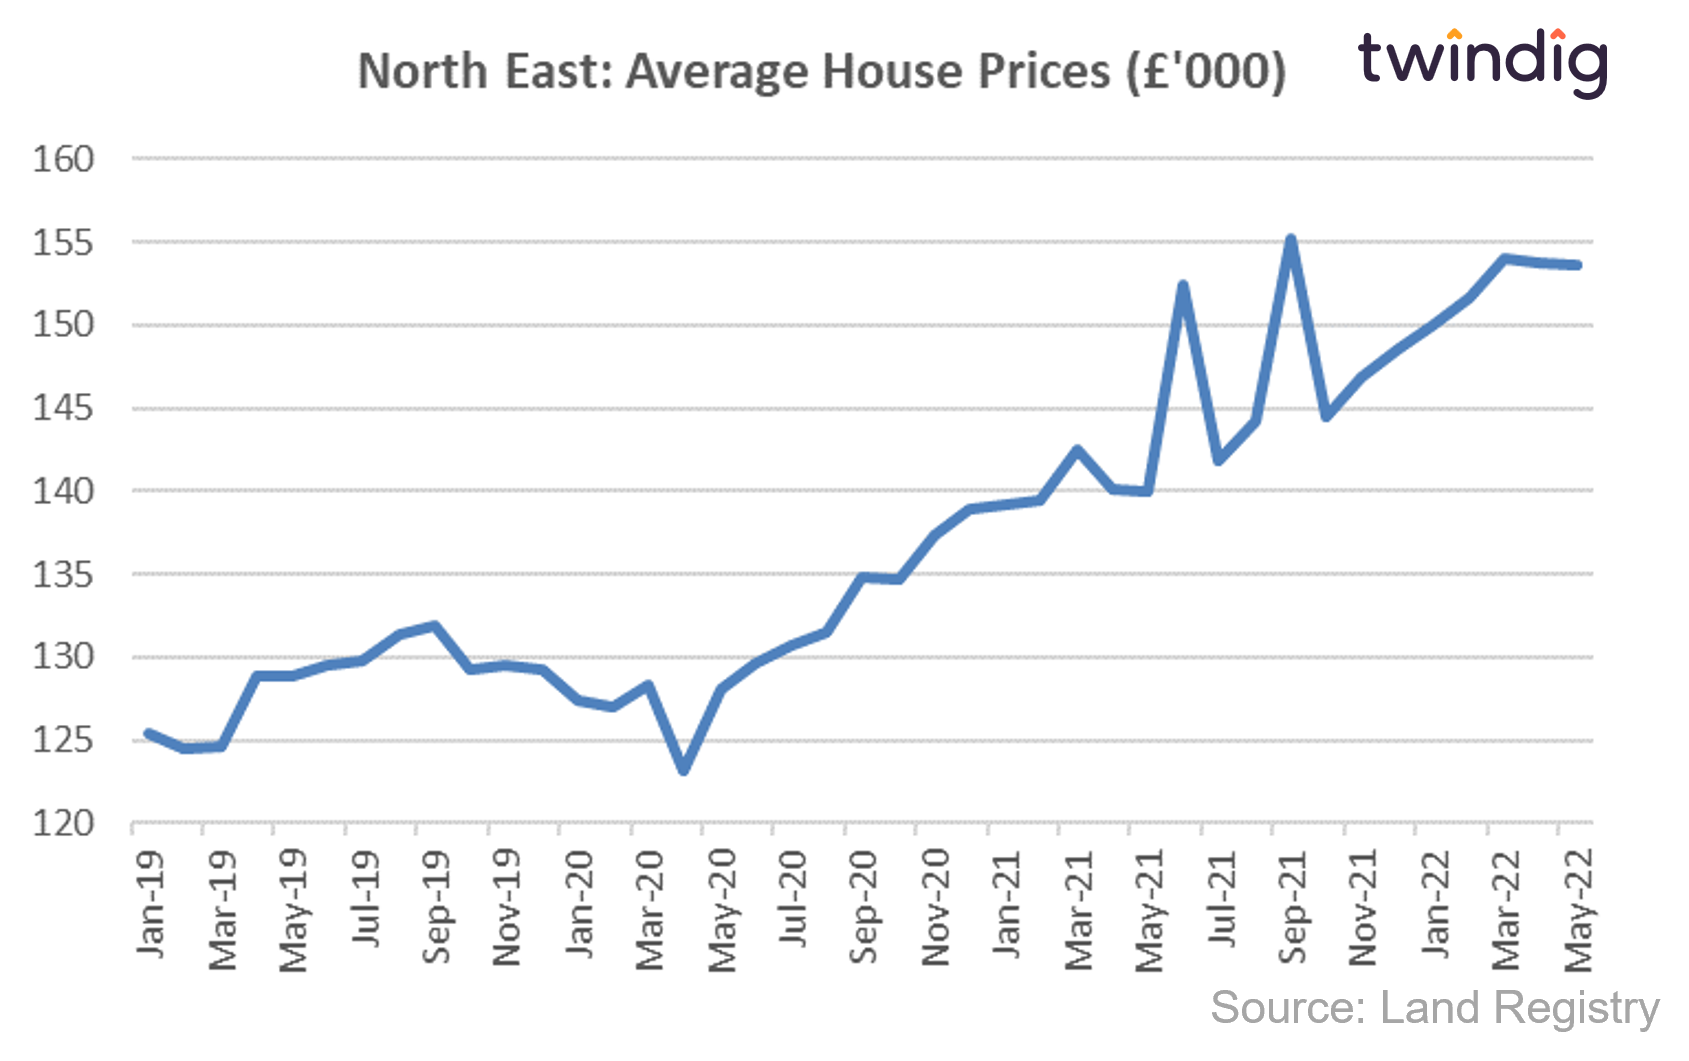 House price graph chart showing average house prices in the North East